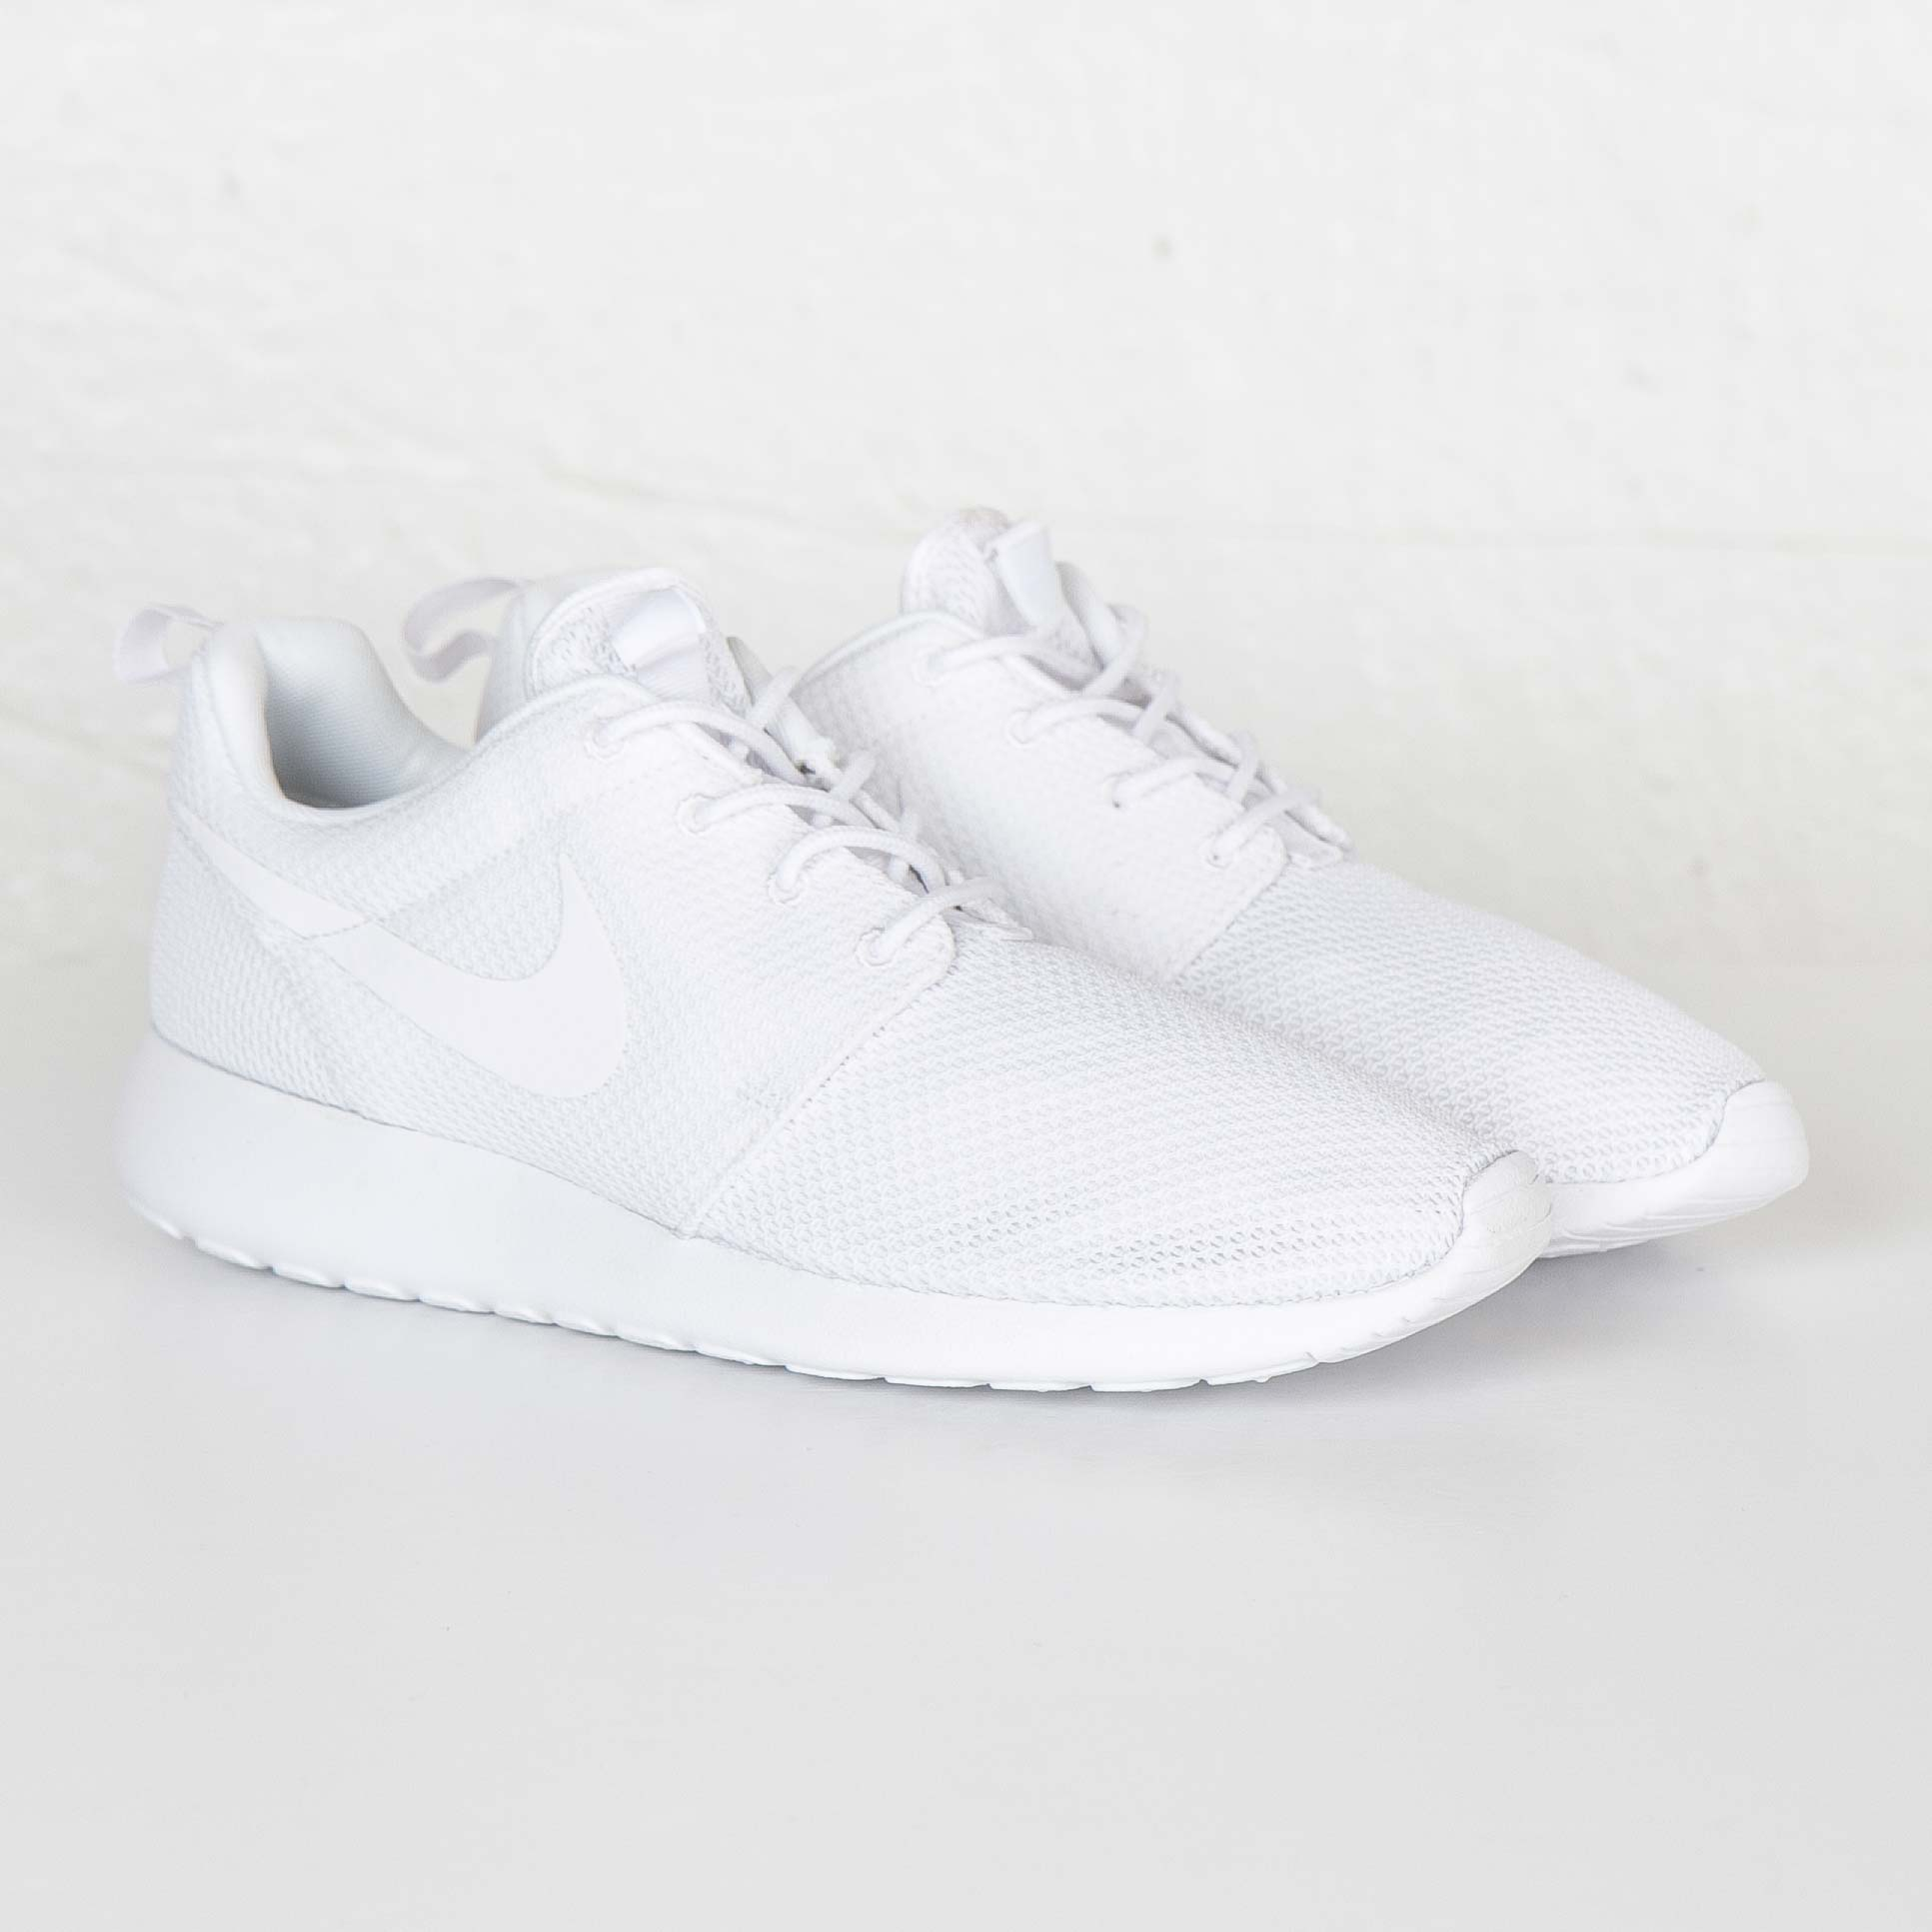 new style d25f3 9e3bd Nike Roshe One - 511881-112 - Sneakersnstuff  sneakers  stre